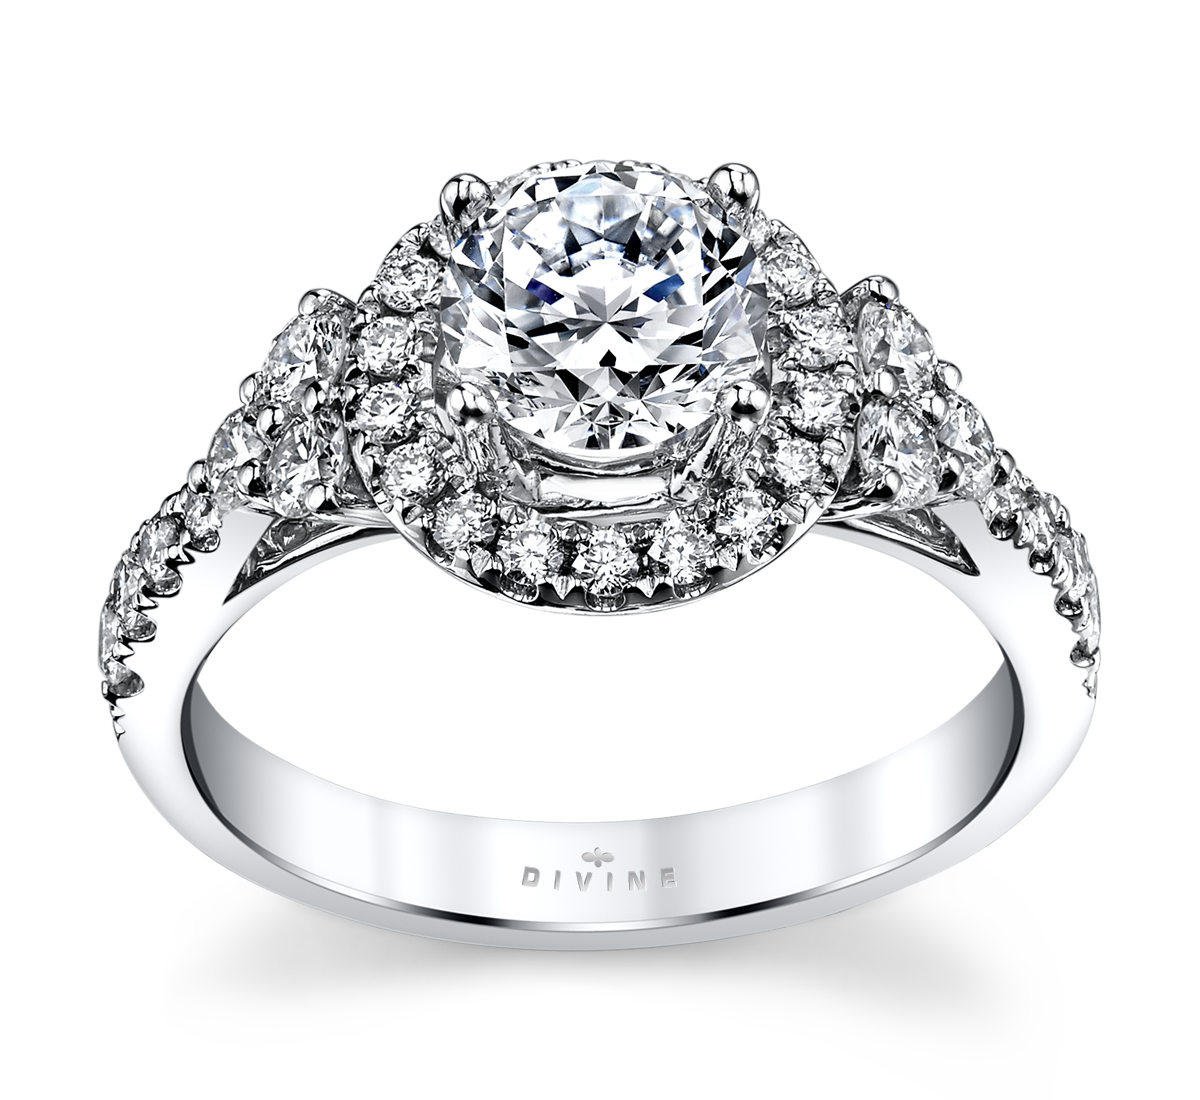 14K White Gold Halo Diamond Engagement Ring Setting 5/8 Cttw.